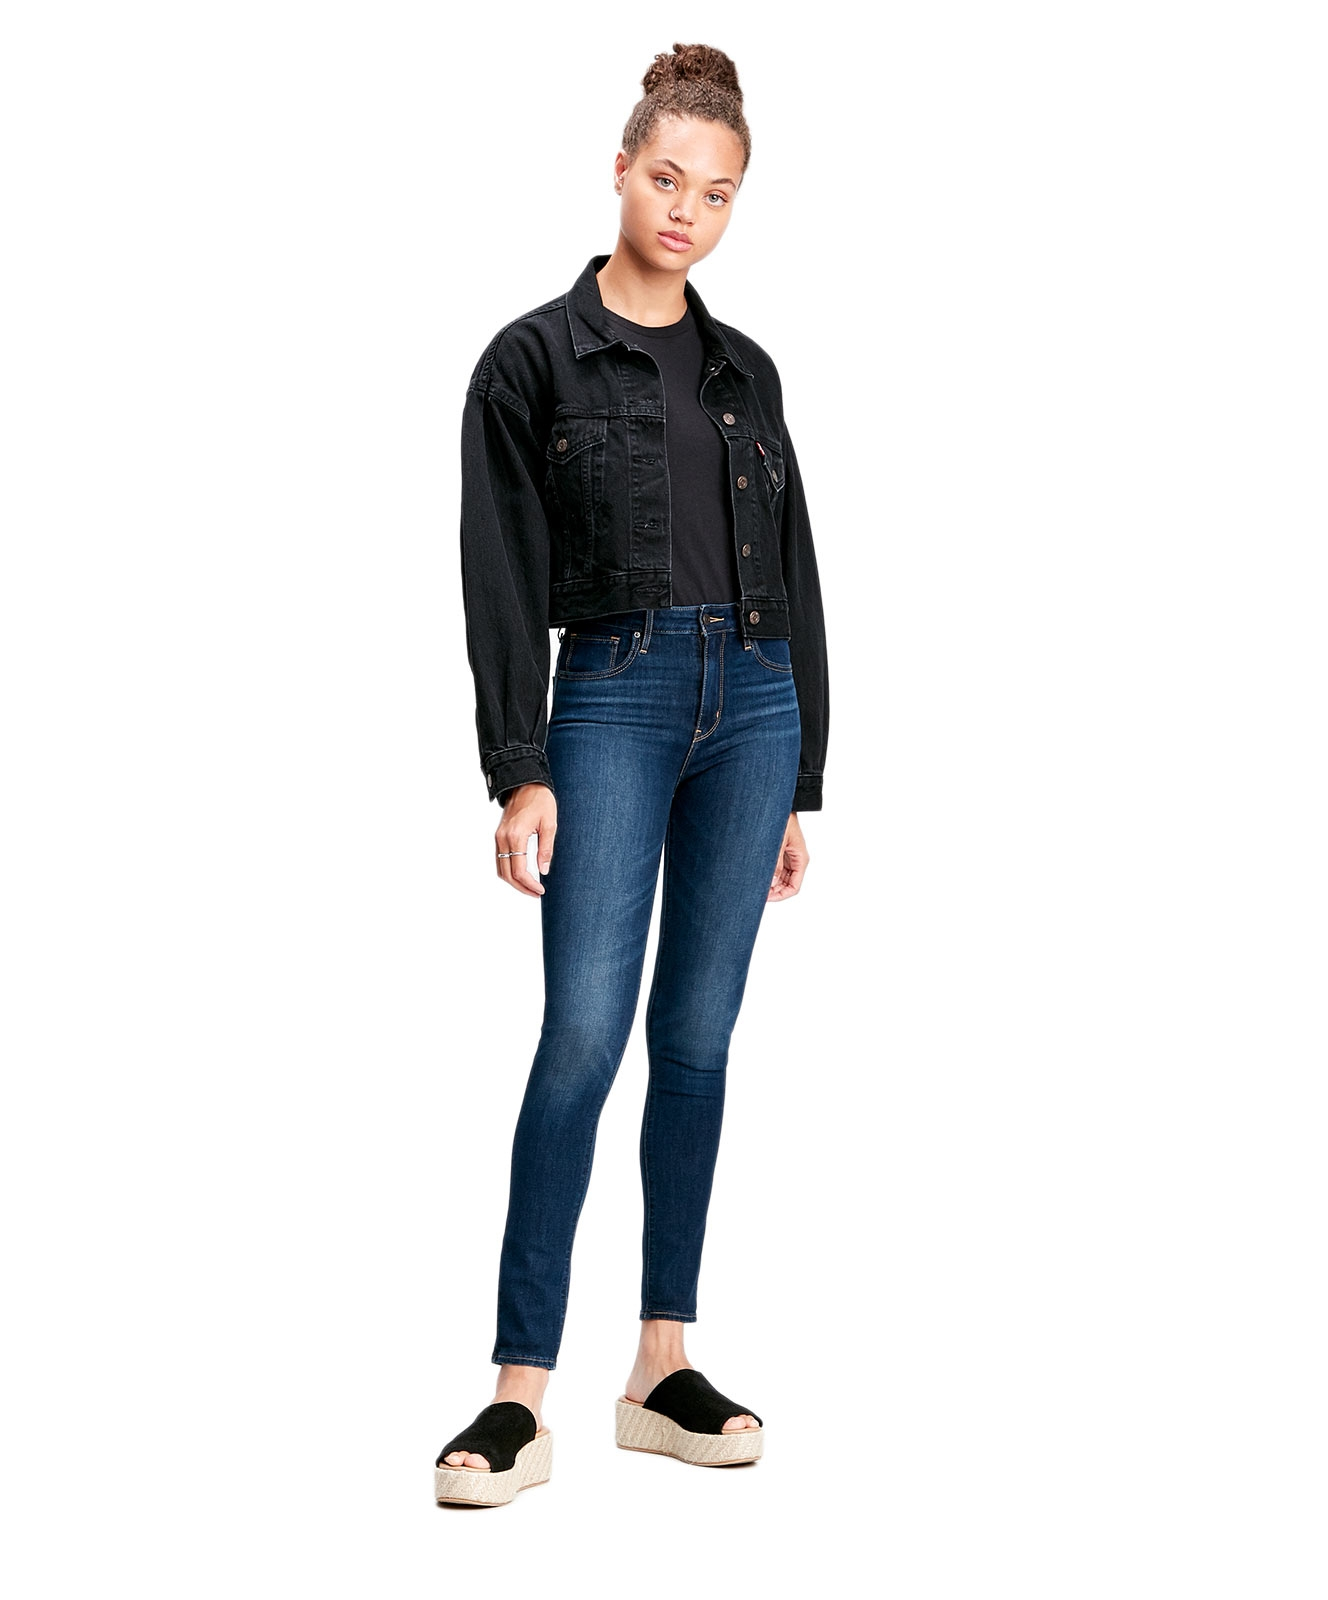 Hosen - Levis High Waisted Skinny Jeans 721 in Smooth It Out  - Onlineshop Jeans Meile